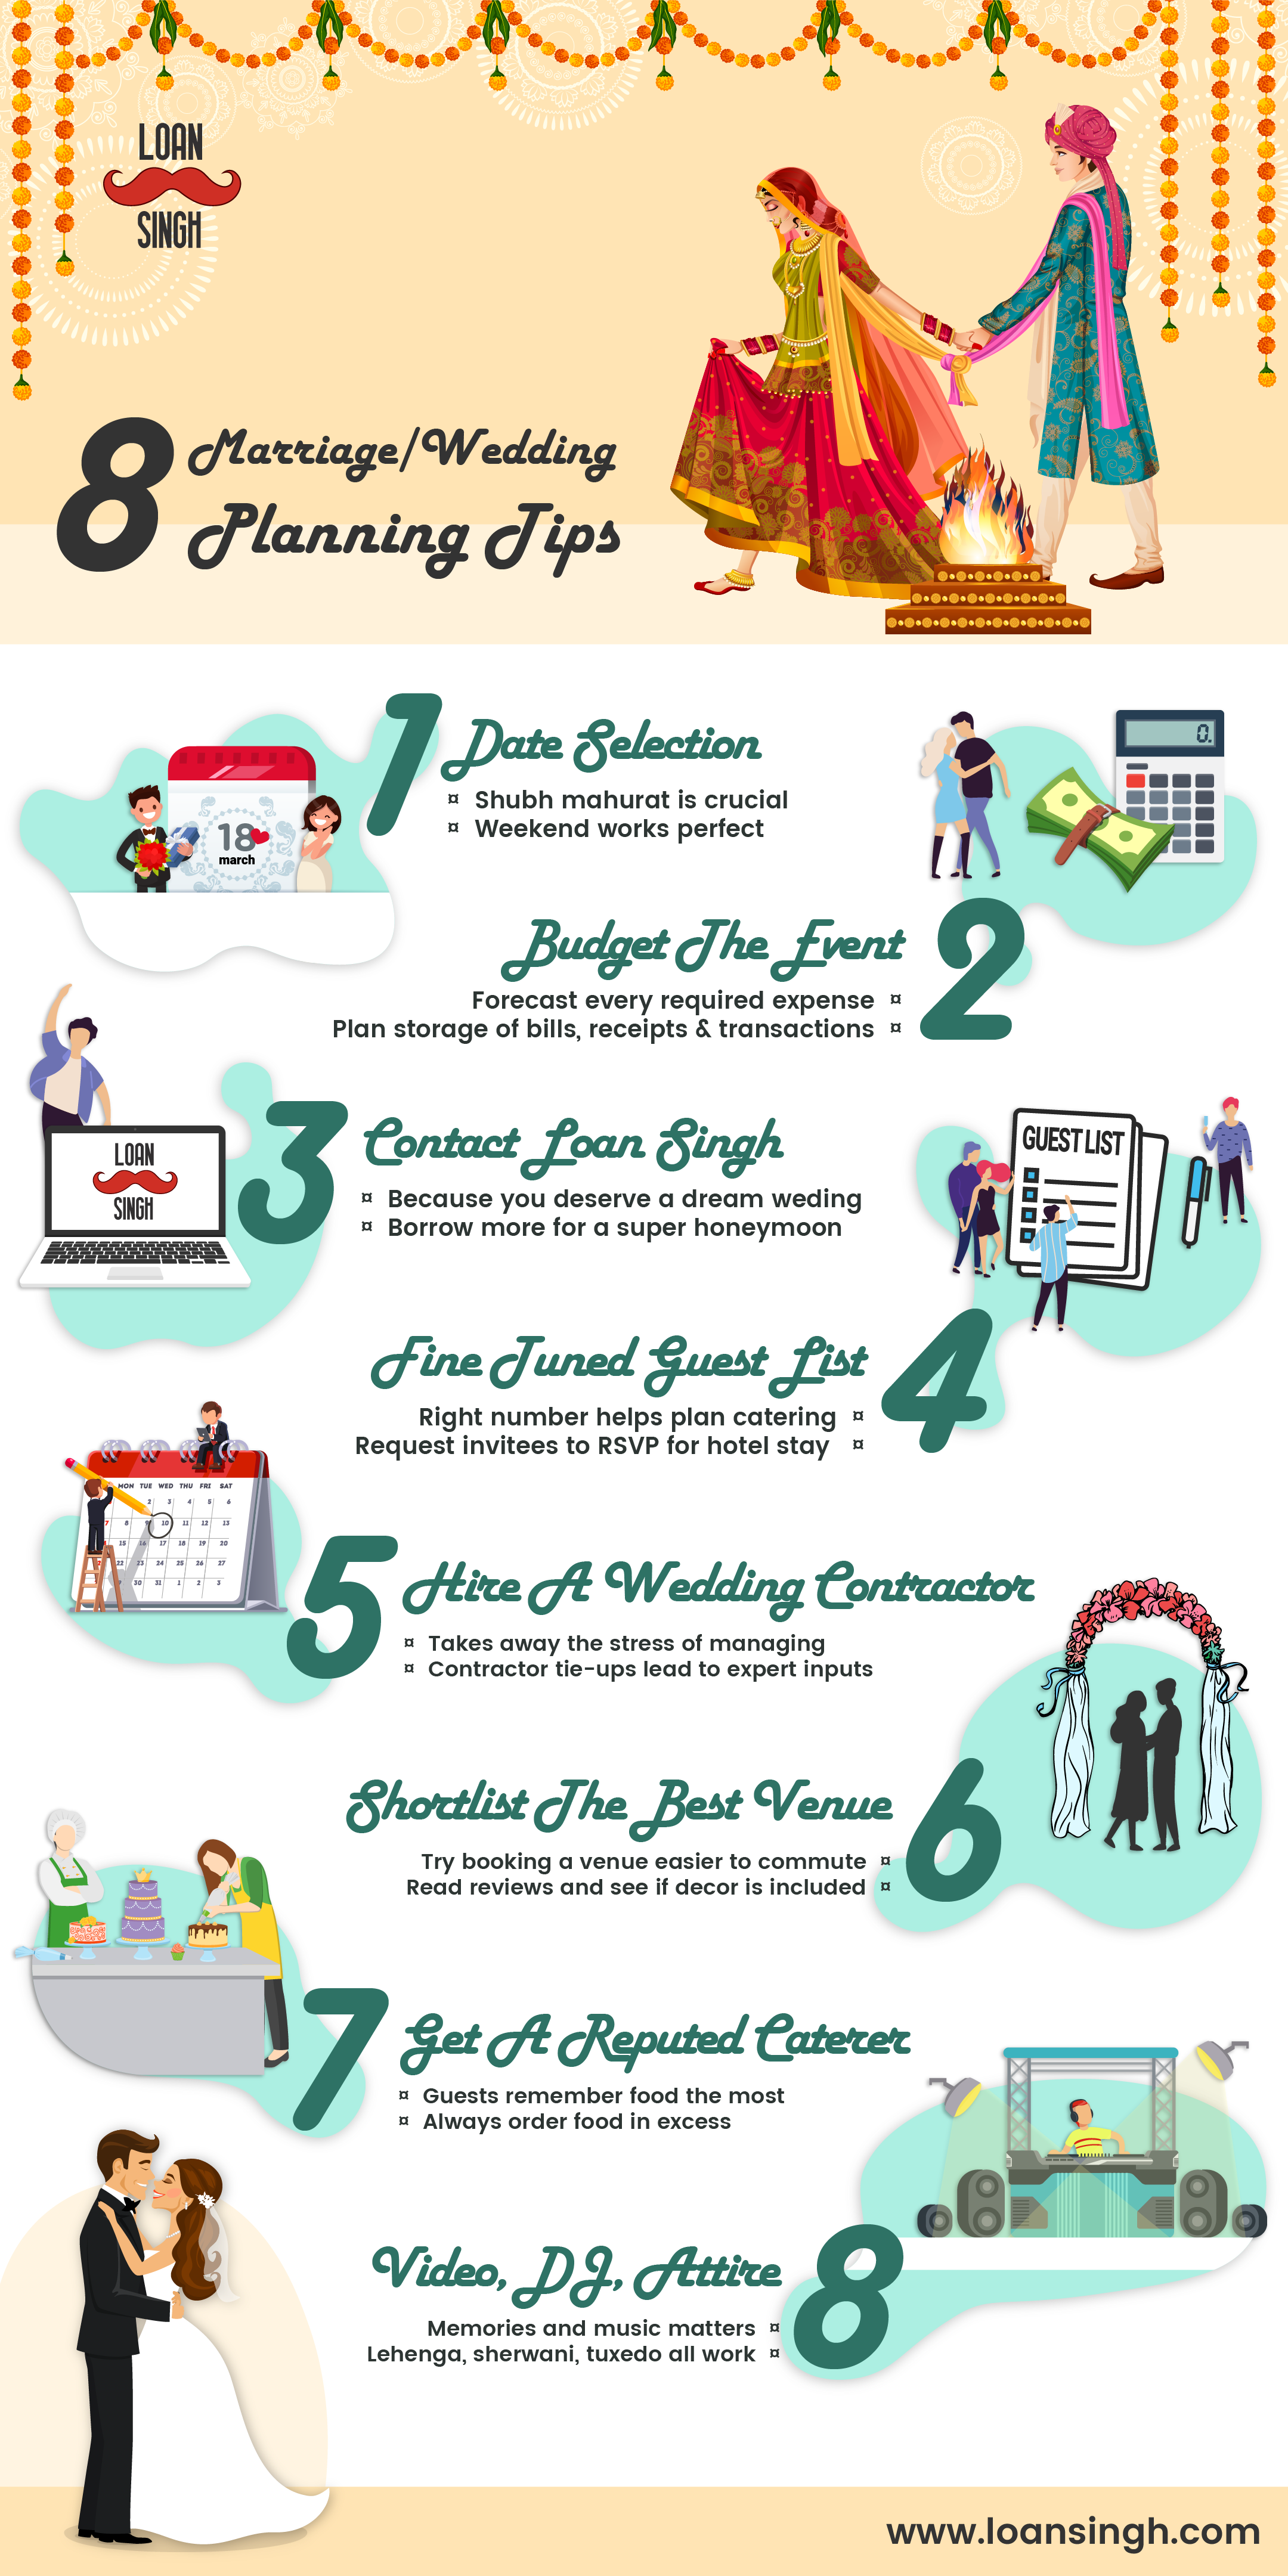 8 Marriage Wedding Tips Find Out How To Get Wedding Loan India Best Loan Website In India Best Personal Loan Personal Loans Instant Loans Finance Loans